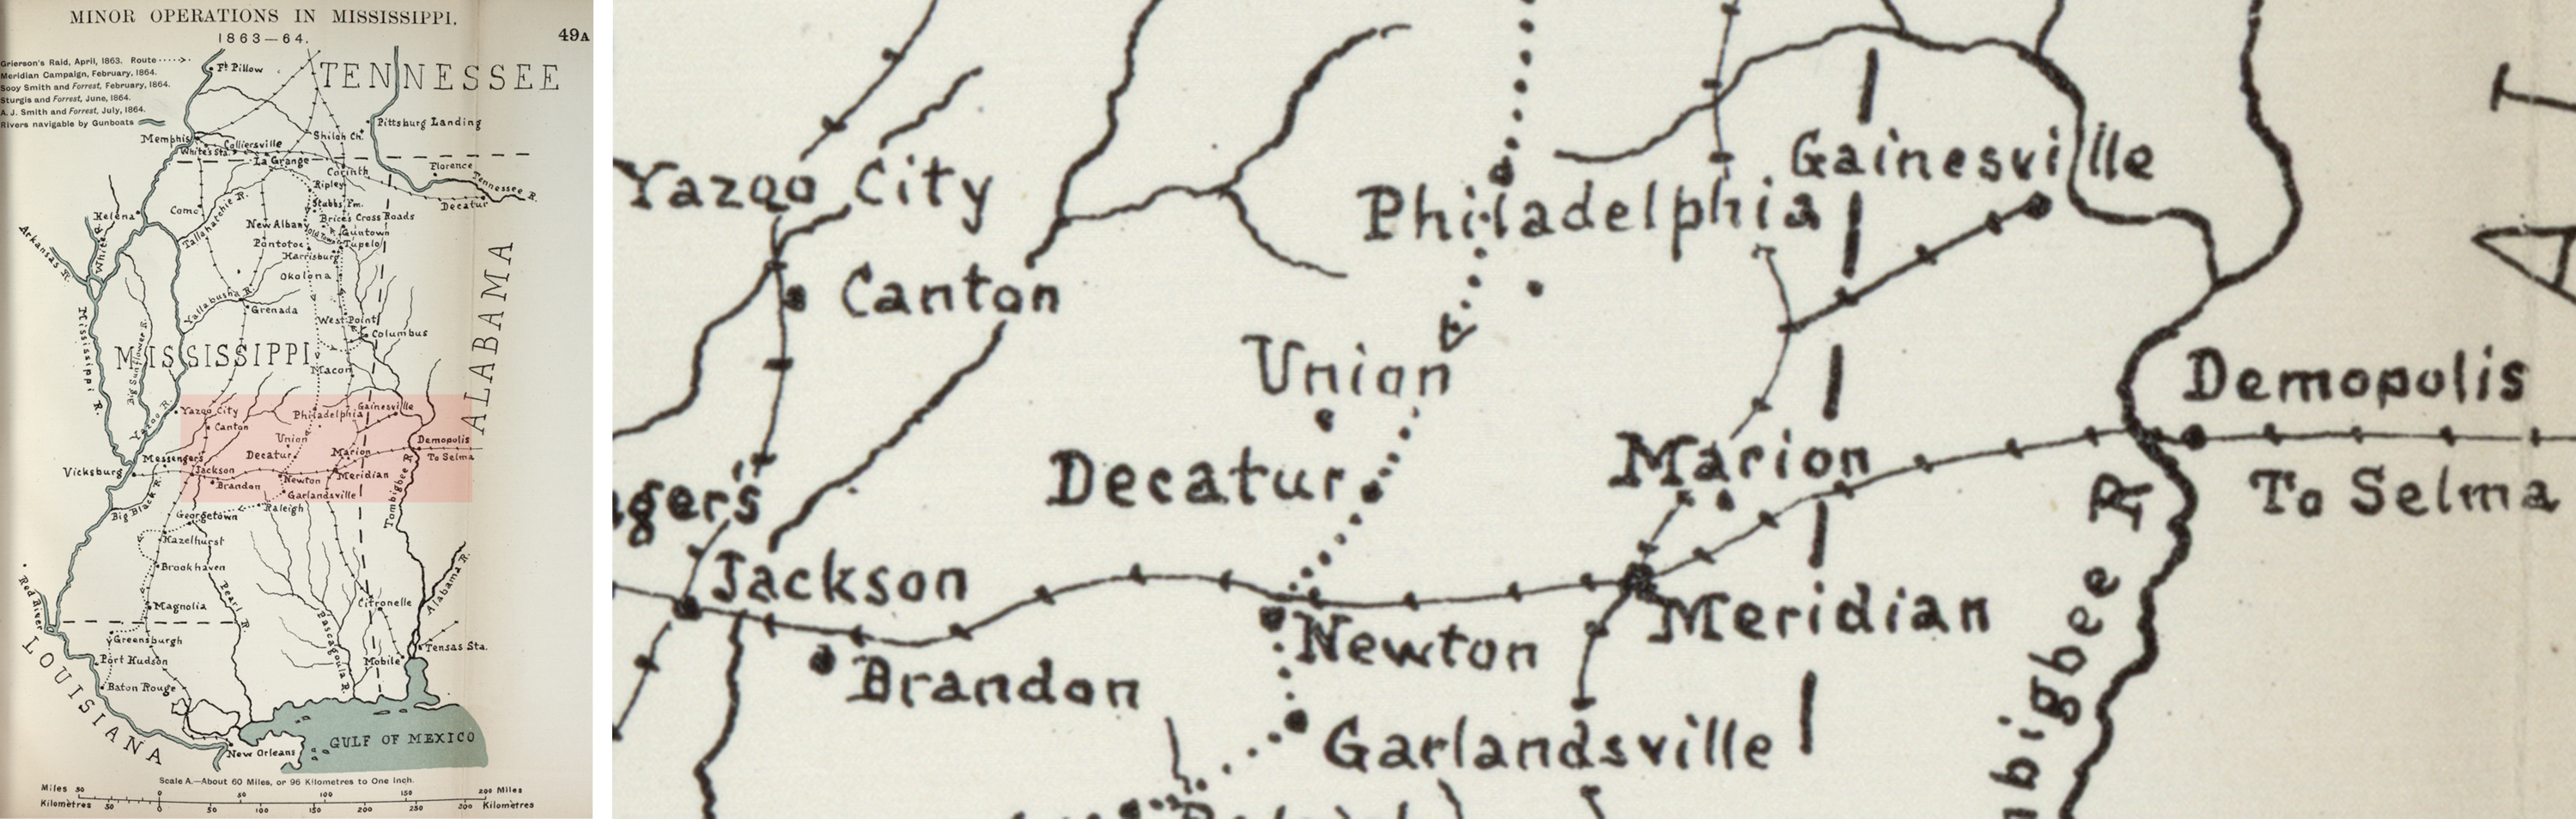 "Detail of Minor Operations in Mississippi, 1863-1864 in John Formby's ""The American Civil War."" Library of Congress"